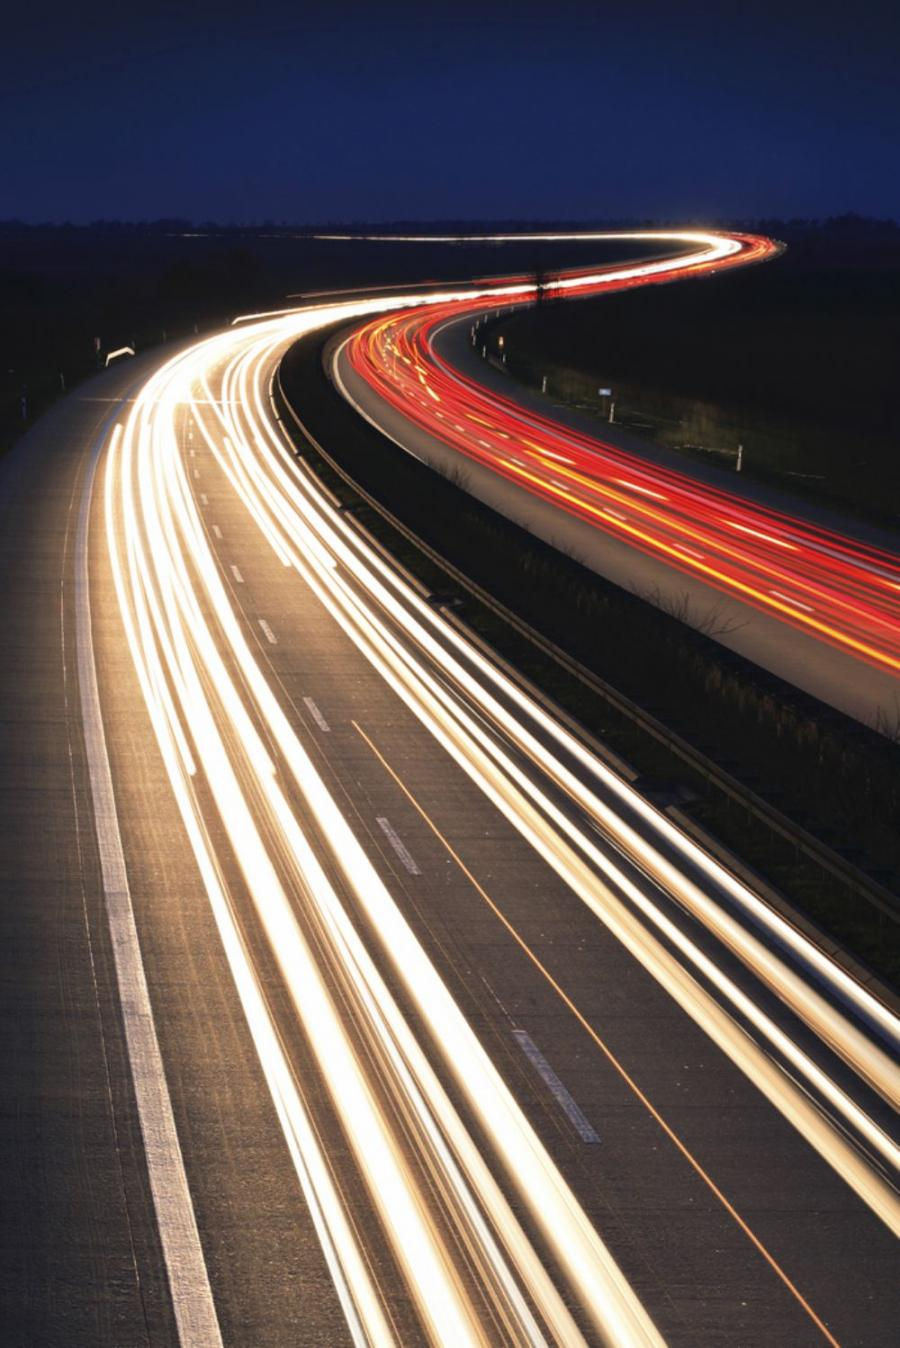 The Ohio Department of Transportation (ODOT) announced that it will move up by as much as a decade the start dates for five major highway projects due to funds made available by improved in-house efficiencies and an unexpected bump in federal funds.